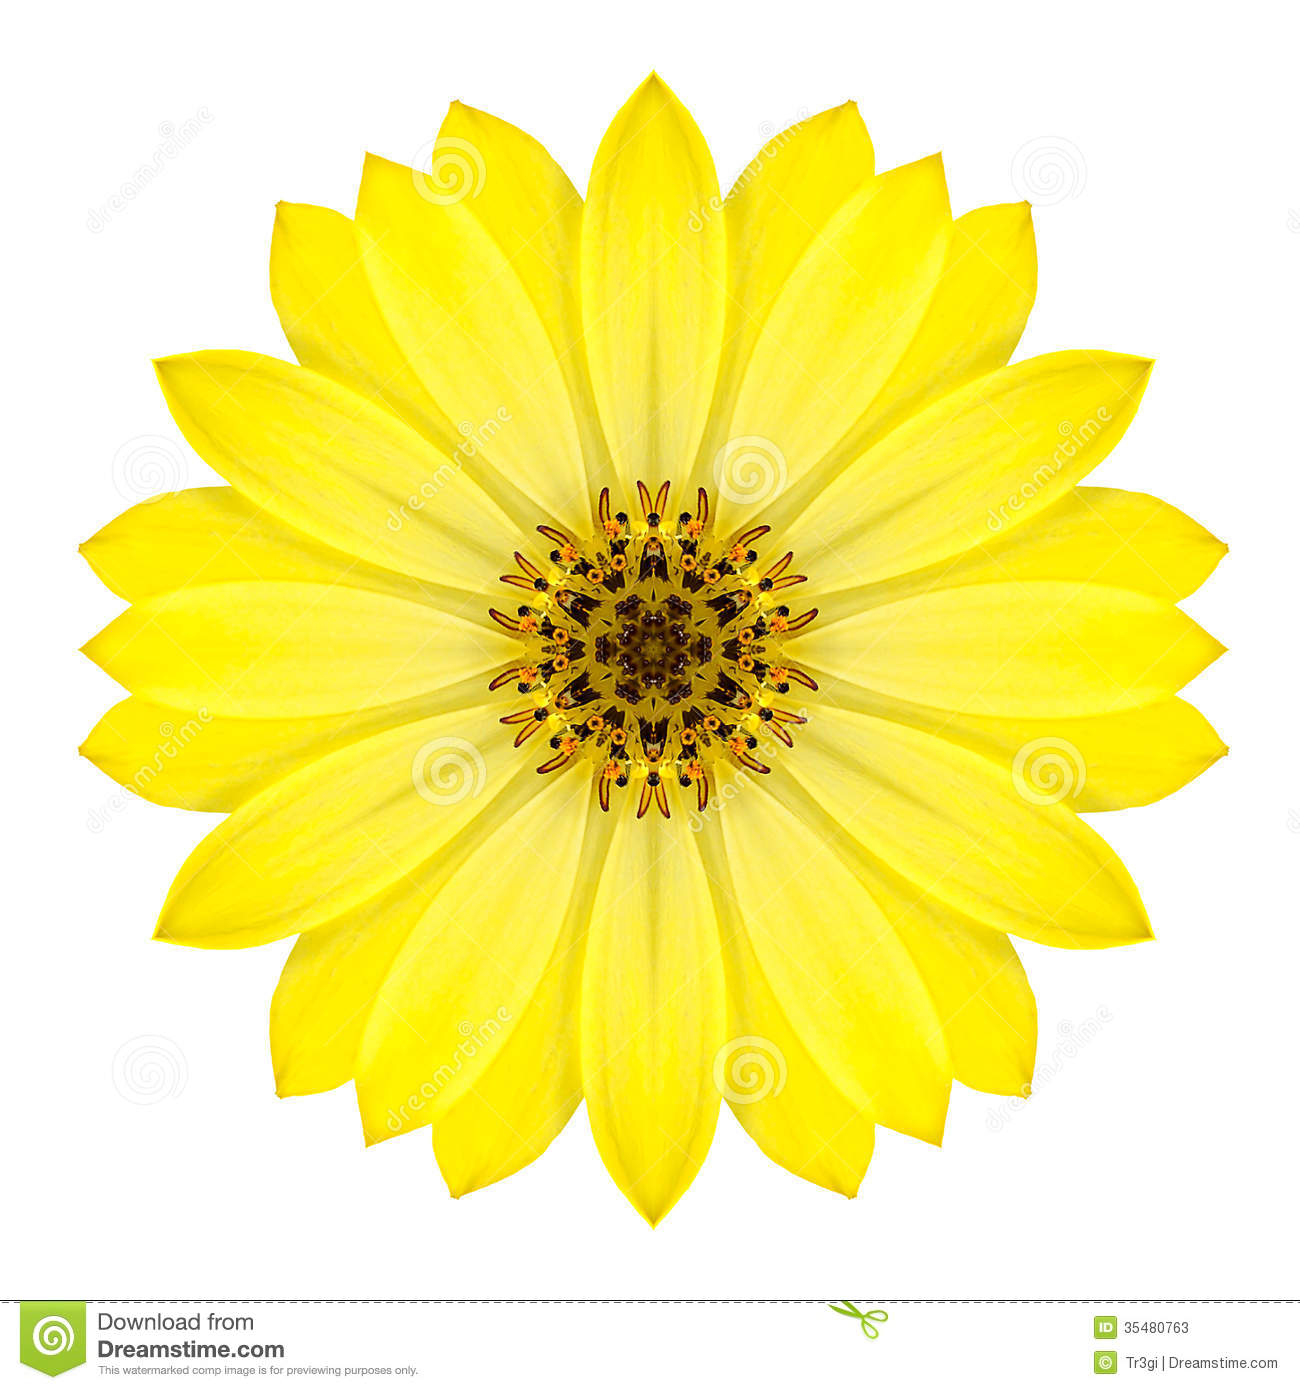 Yellow Concentric Daisy Flower Isolated On White Mandala Design